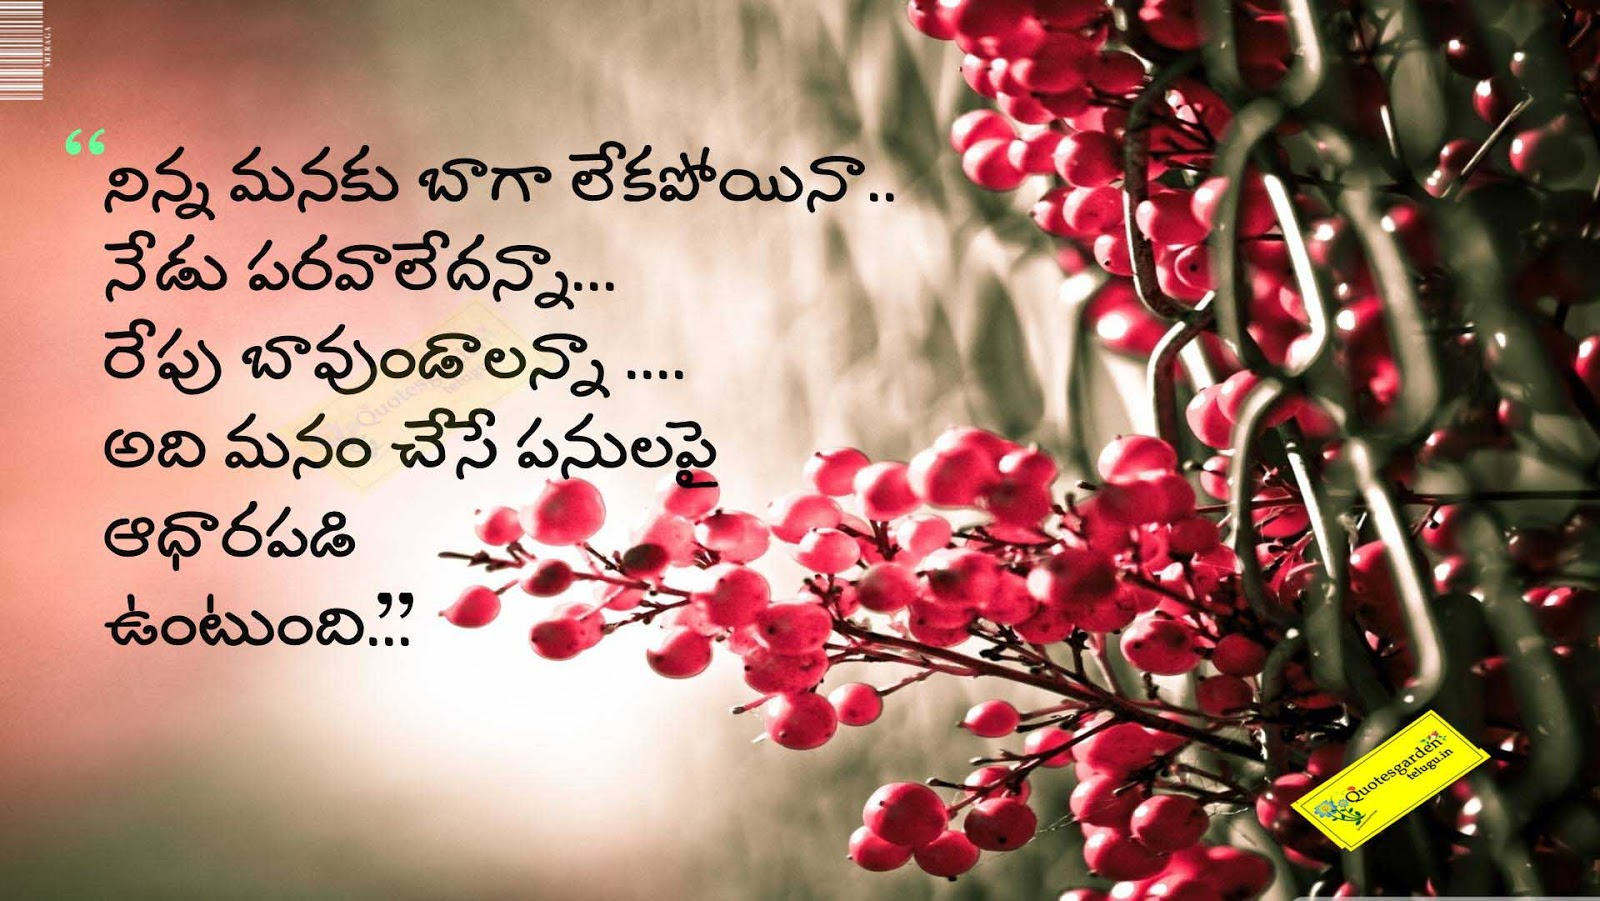 Heart Touching Quotes In Telugu About Life The Christmas Tree